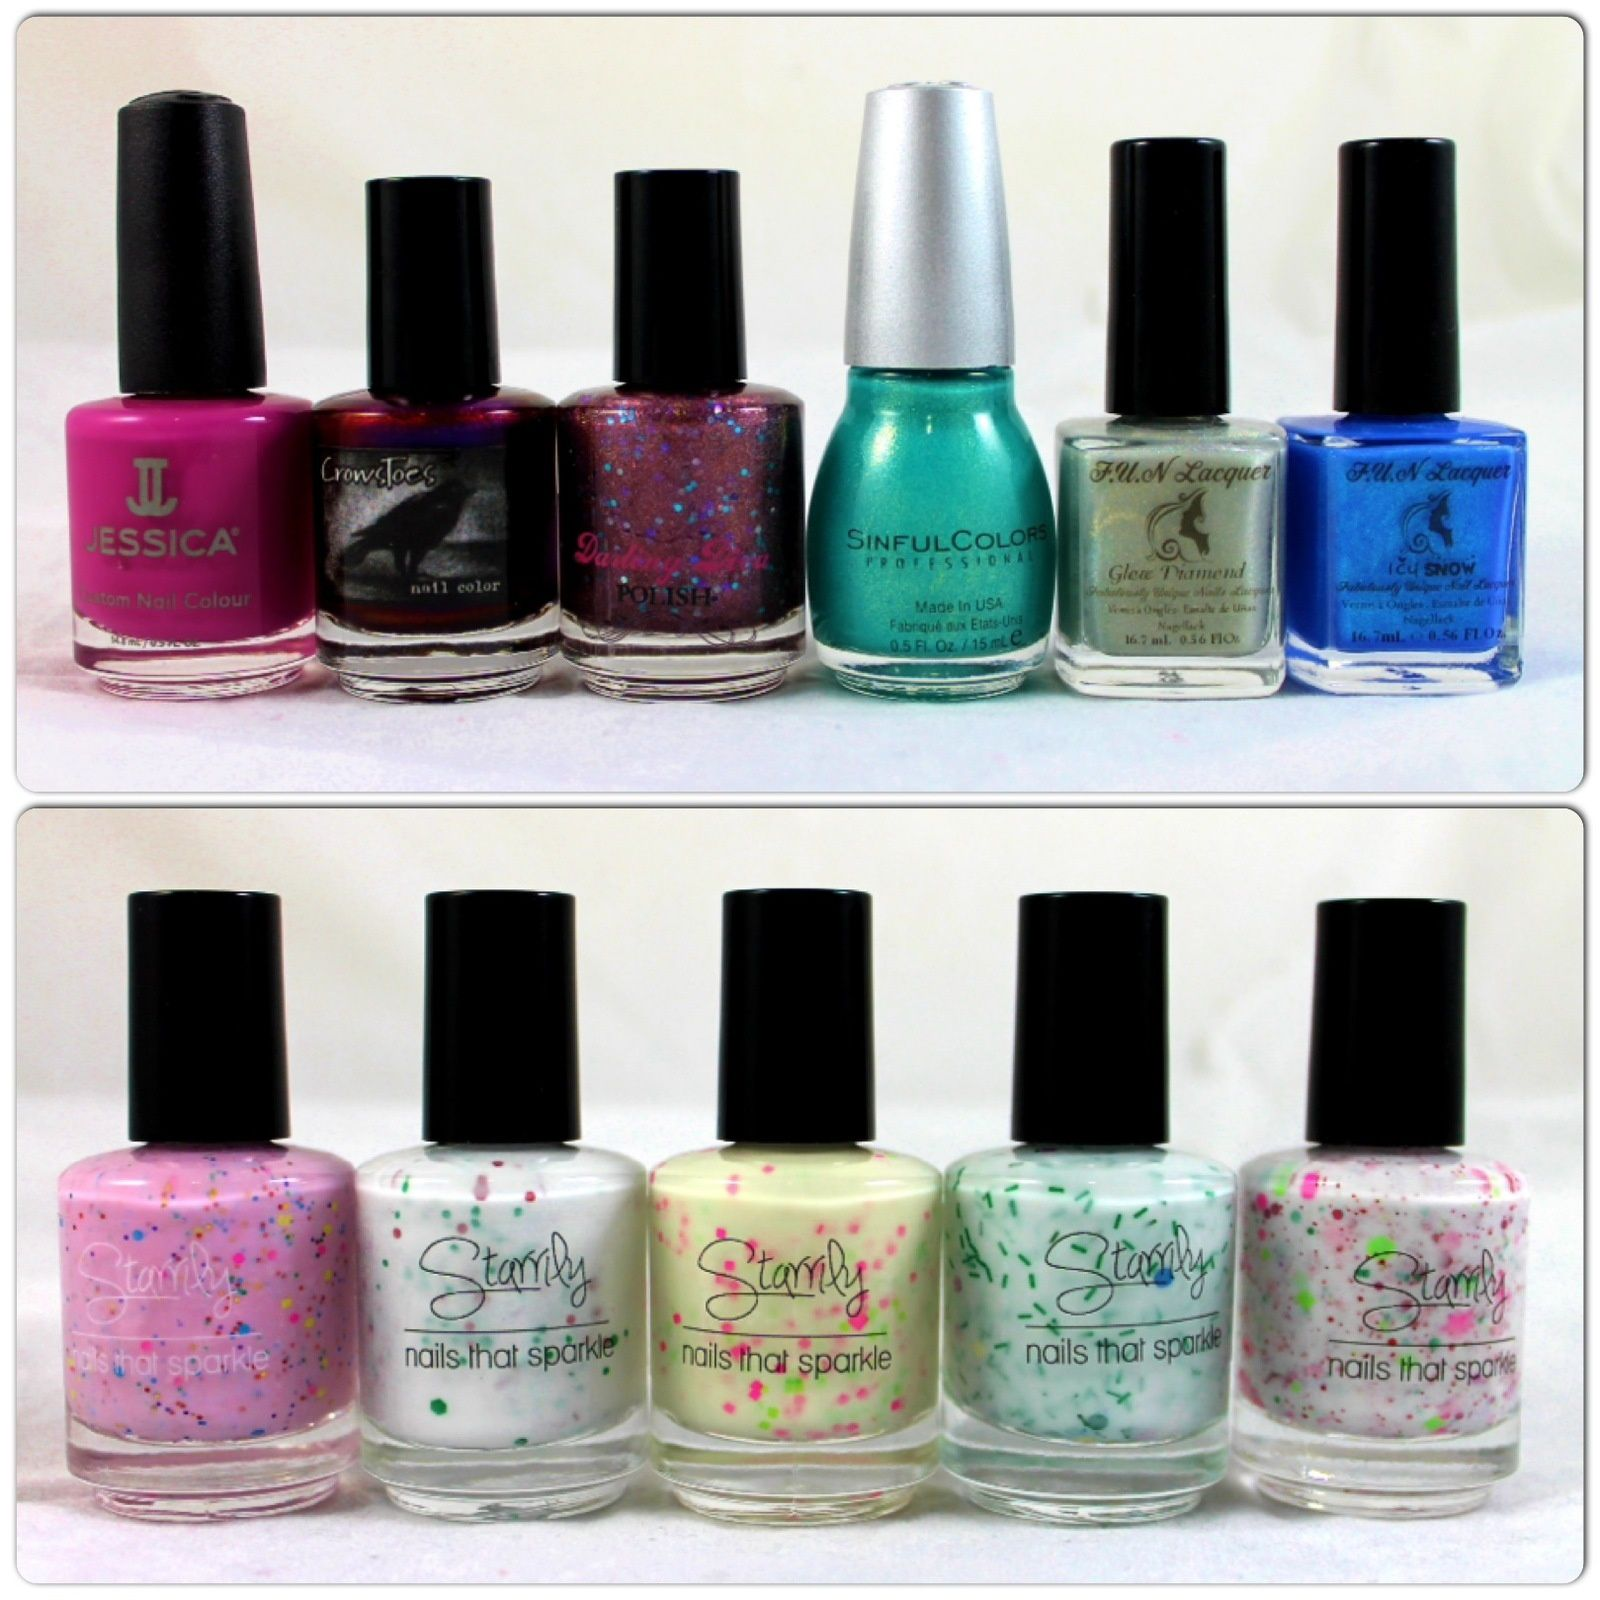 Jessica Color Me Calli Lily, Crowstoes Indian Summer, Darling Diva Polish Intimate Secret, Sinful Colors Treasure Chest,, FUN Lacquer Glow Diamond / Icy Snow, Starrily Strawberry Donut / Holly Day / Poprocks / O Christmas Tree /  Barbie's First Christmas